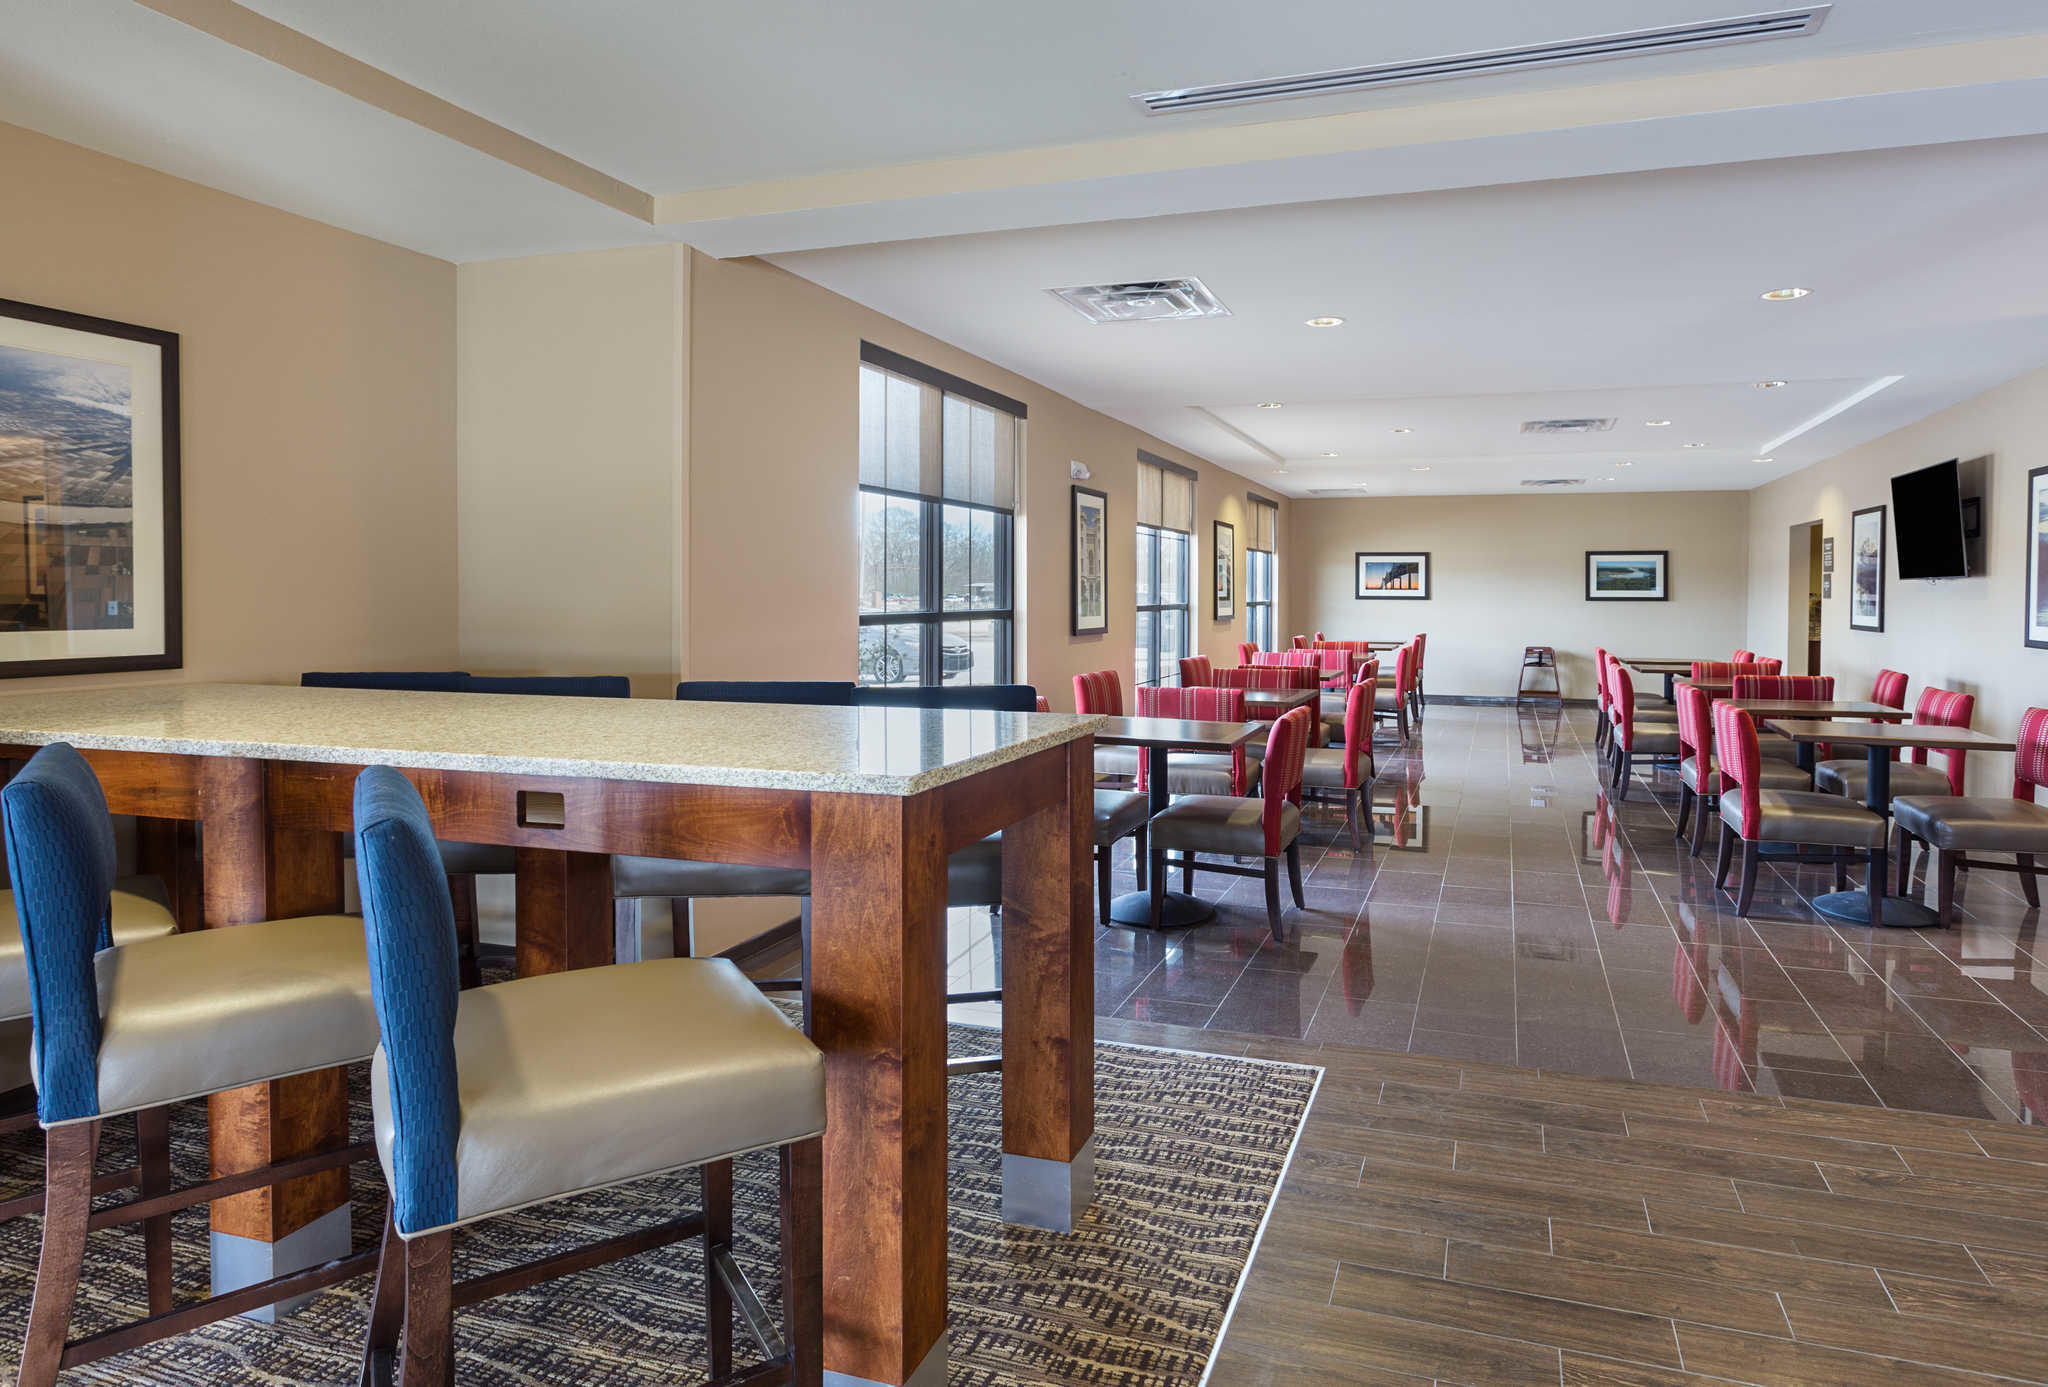 Comfort Inn Amp Suites Coupons Near Me In Zachary 8coupons